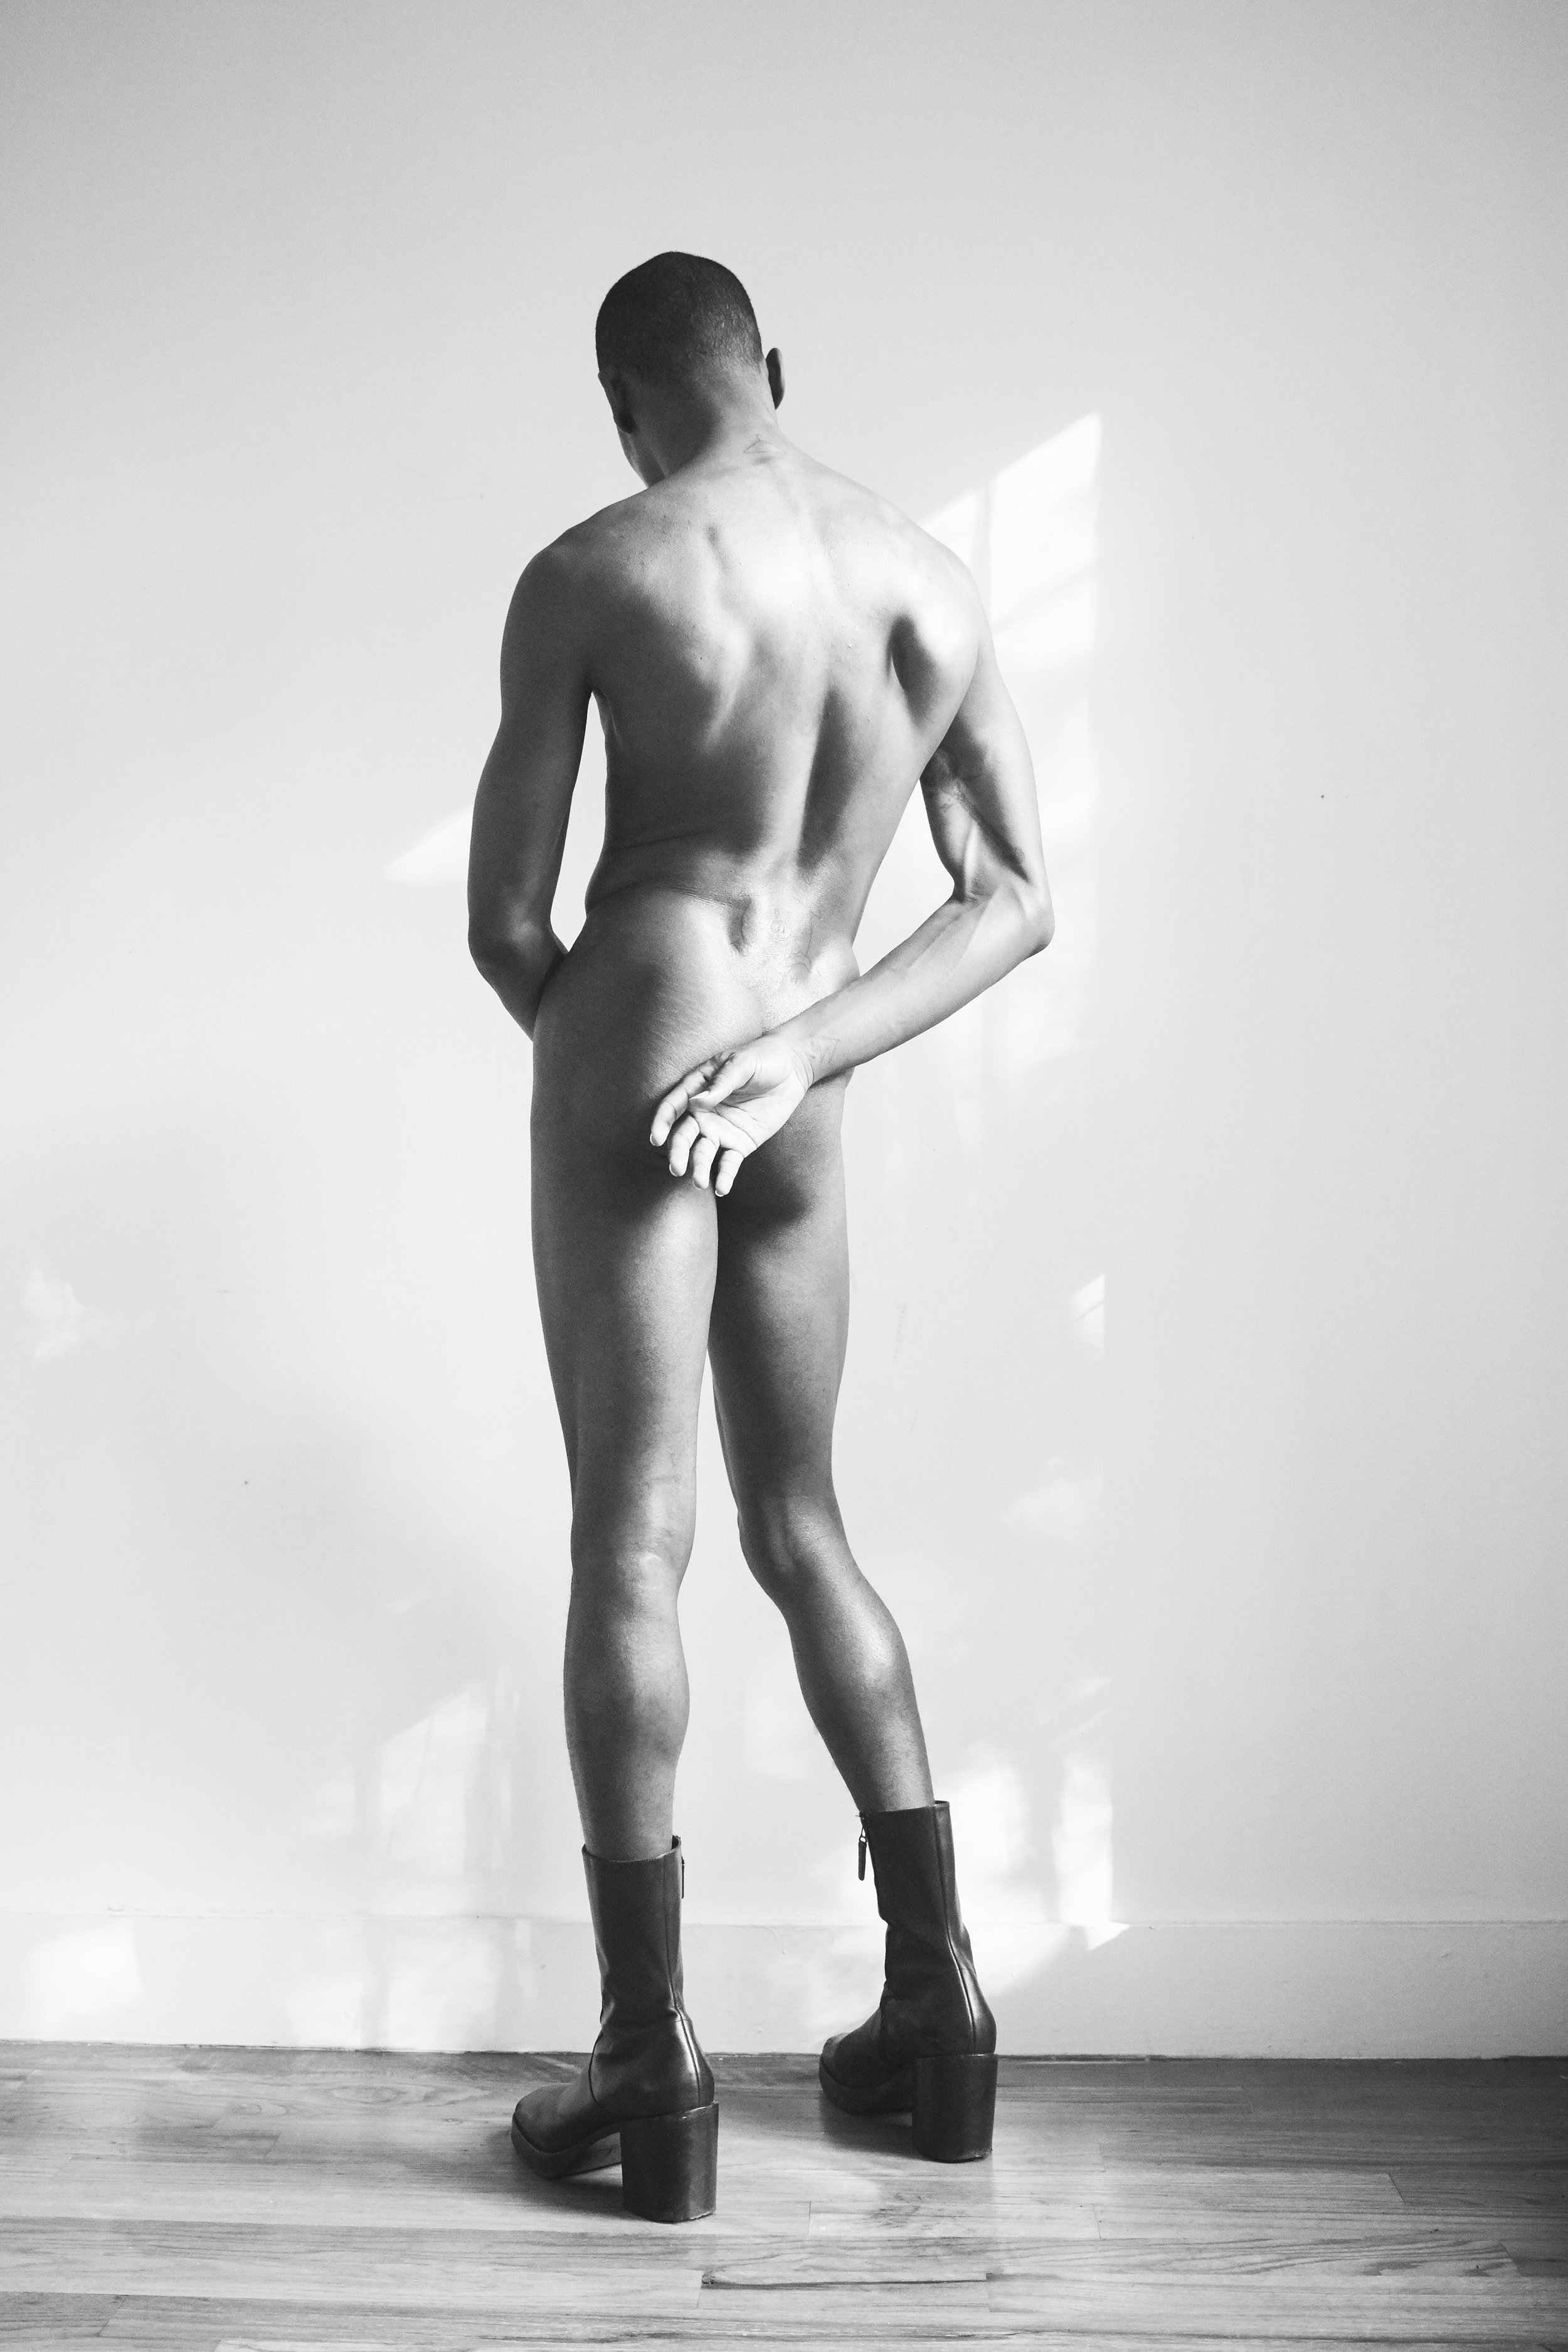 [Image description: photograph of a person standing against a pale wall, with their back to the camera. They are naked, but for a pair of leather boots with thick heels.]